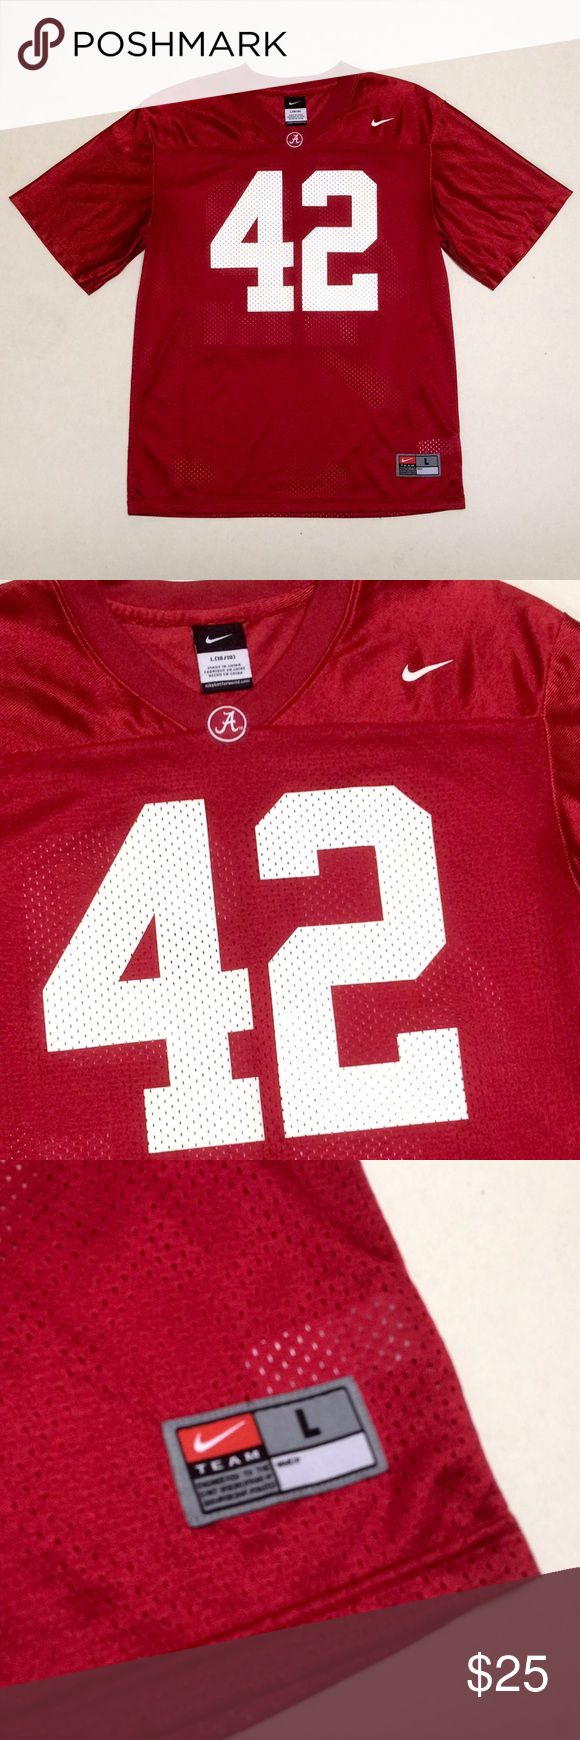 University of Alabama -Nike Youth Football Jersey University of Alabama  Nike Football Jersey 🏈  New without tags!    Size Youth Large (16 - 18)   Would fit a Women's Size Small/Medium   Roll Tide!! 🌊 Nike Shirts & Tops Tees - Short Sleeve